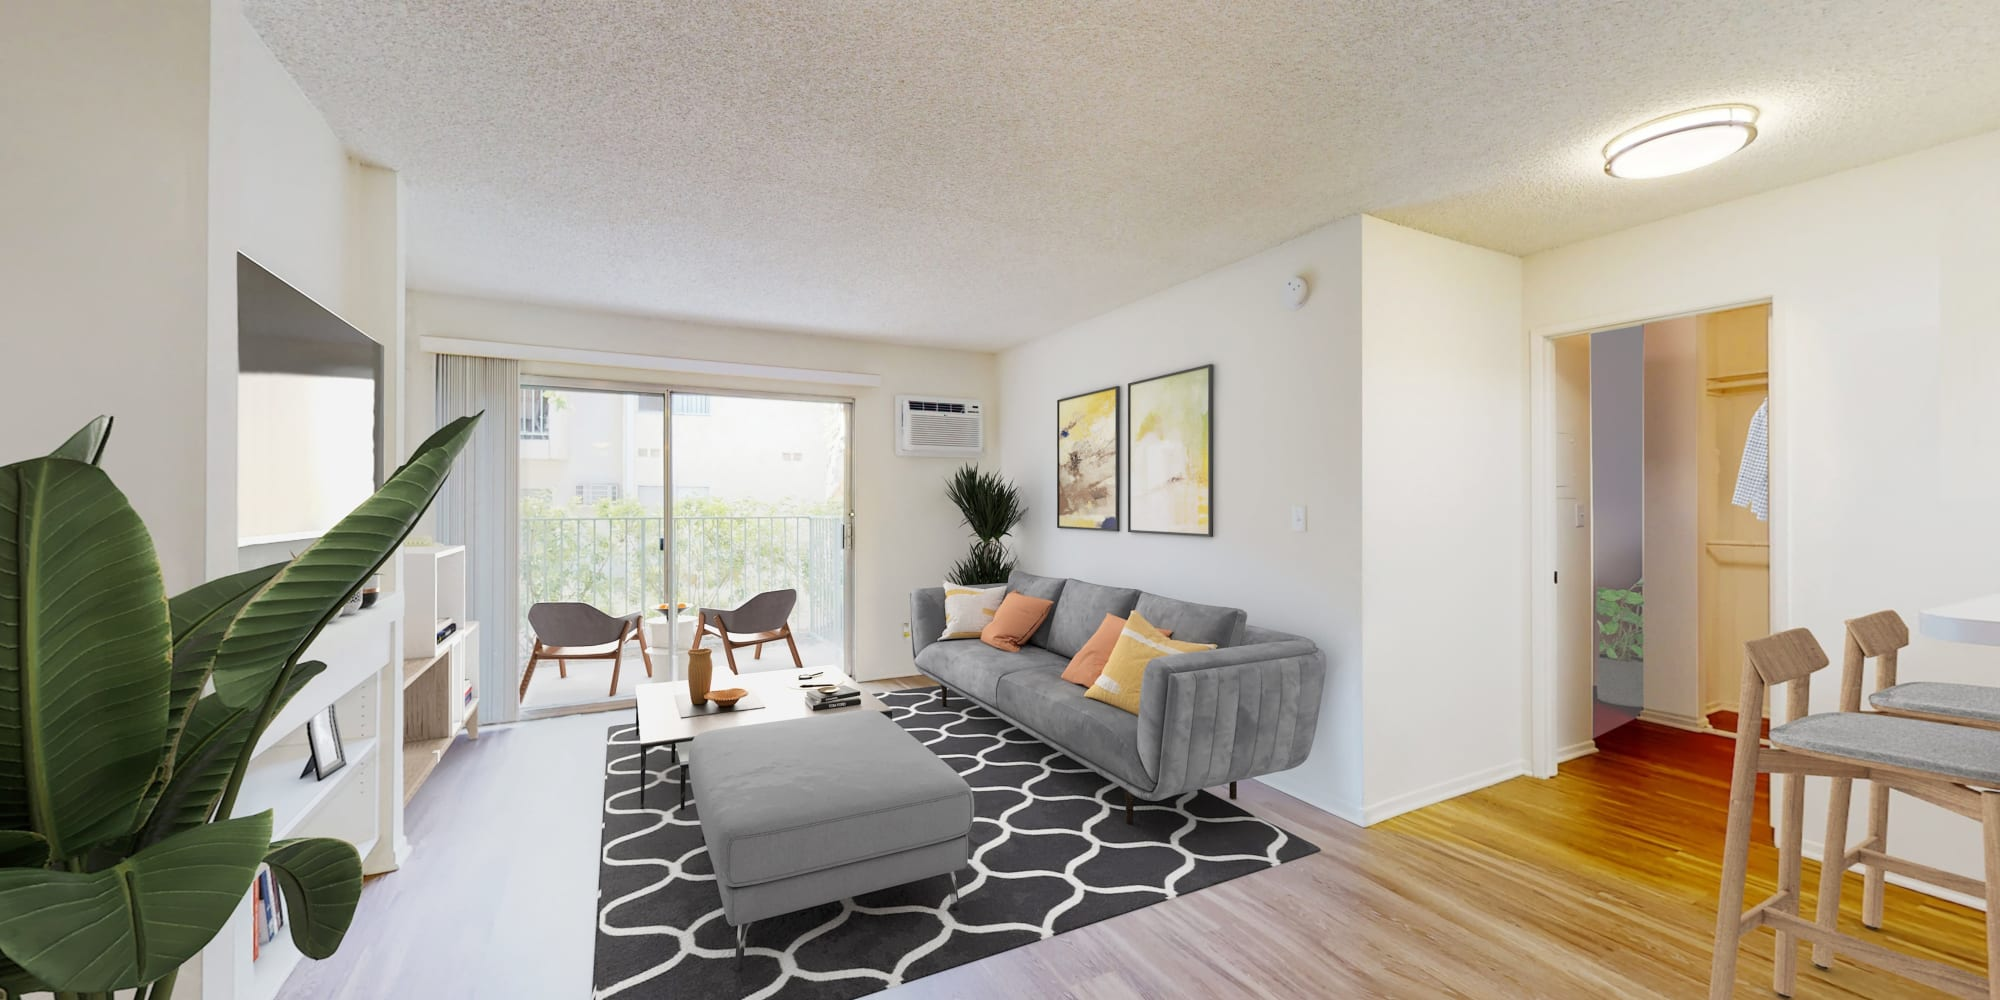 Open-concept one-bedroom apartment's living room at Village Pointe in Northridge, California